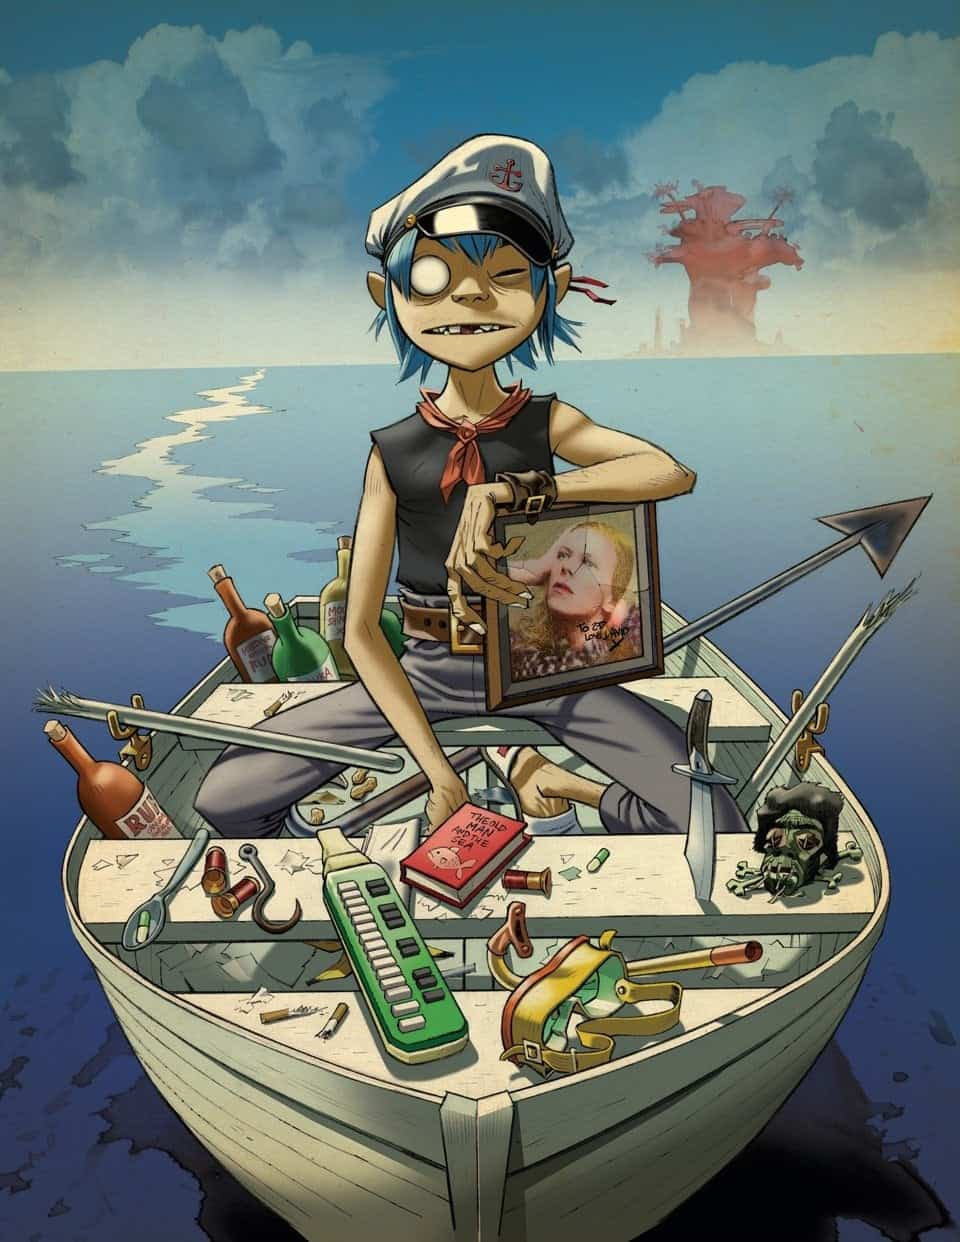 Legendary Jamie Hewlett's Celebrates his Work on Tank Girl, Gorillaz and more -uk, illustrations, gorillaz, gohome, artist